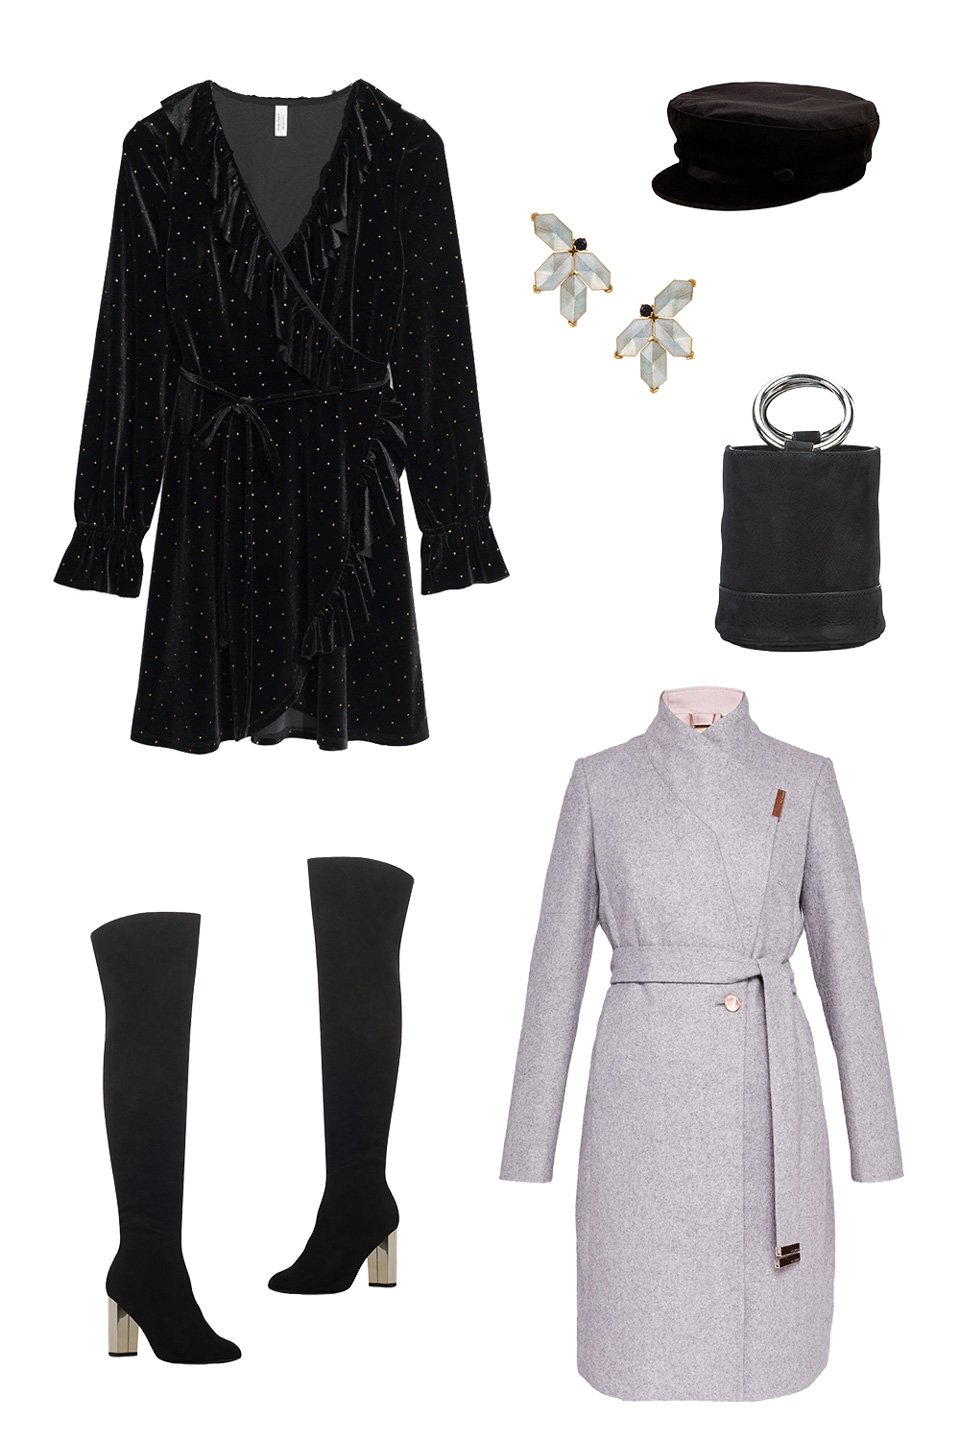 How To Dress For A Parisian Winter